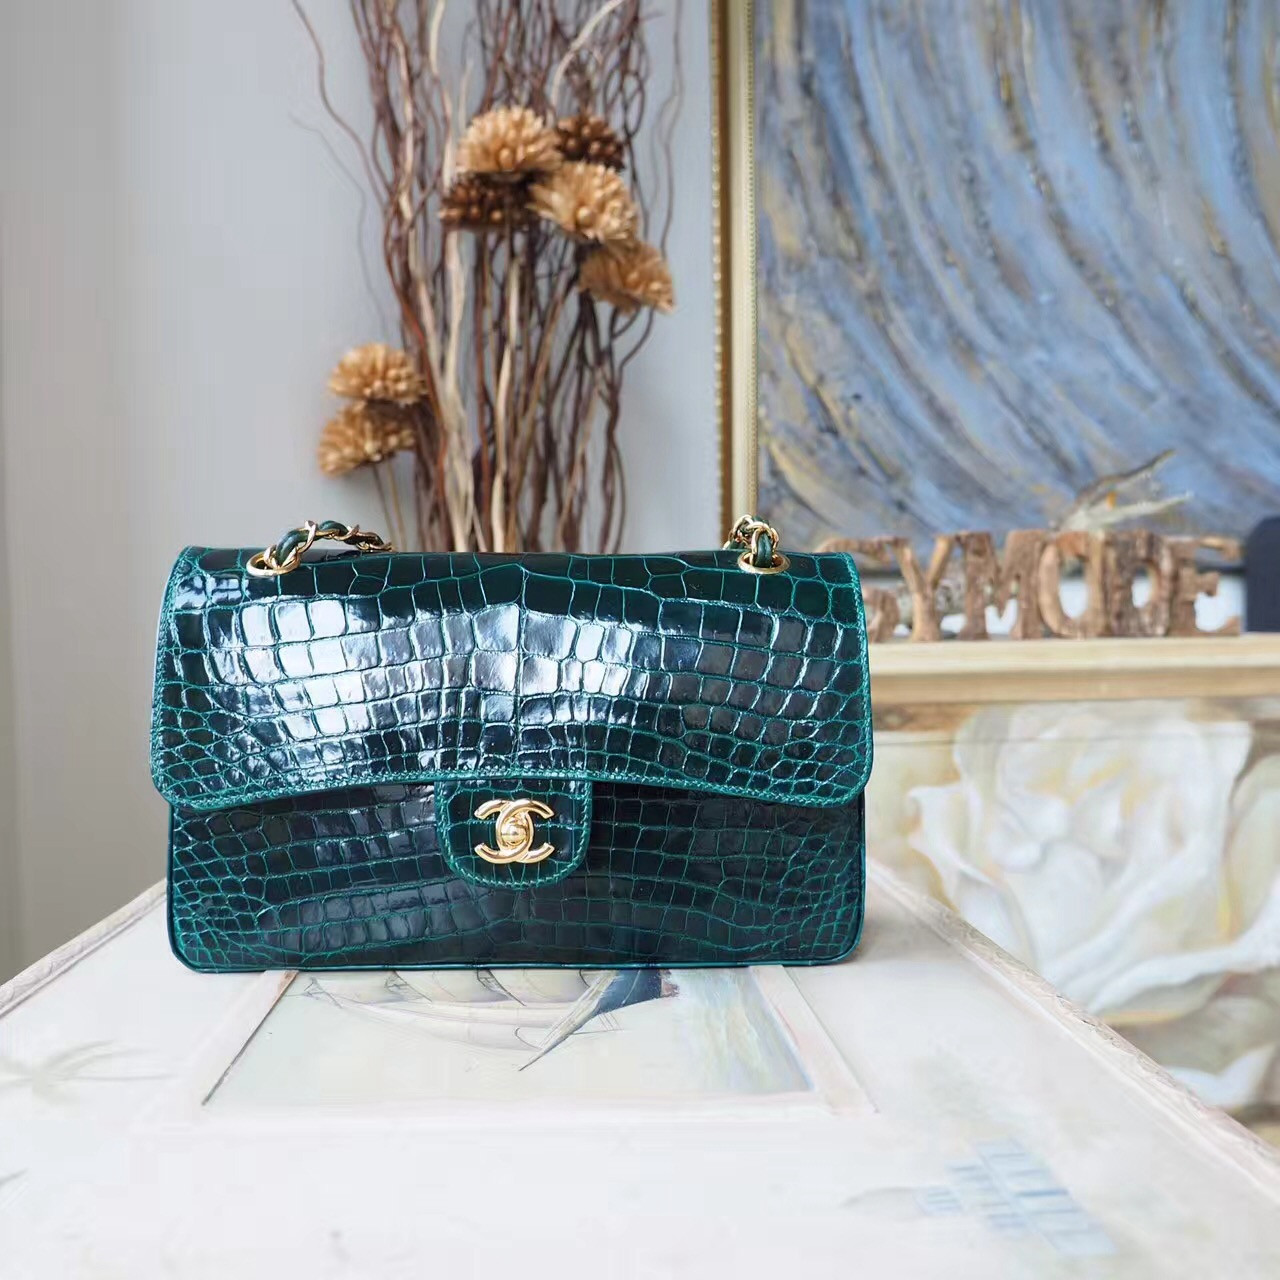 e39043b354a7fc Chanel Alligator Skin Classic Flap 25cm Bag Gold Hardware Spring/Summer  2018 Collection, Emerald